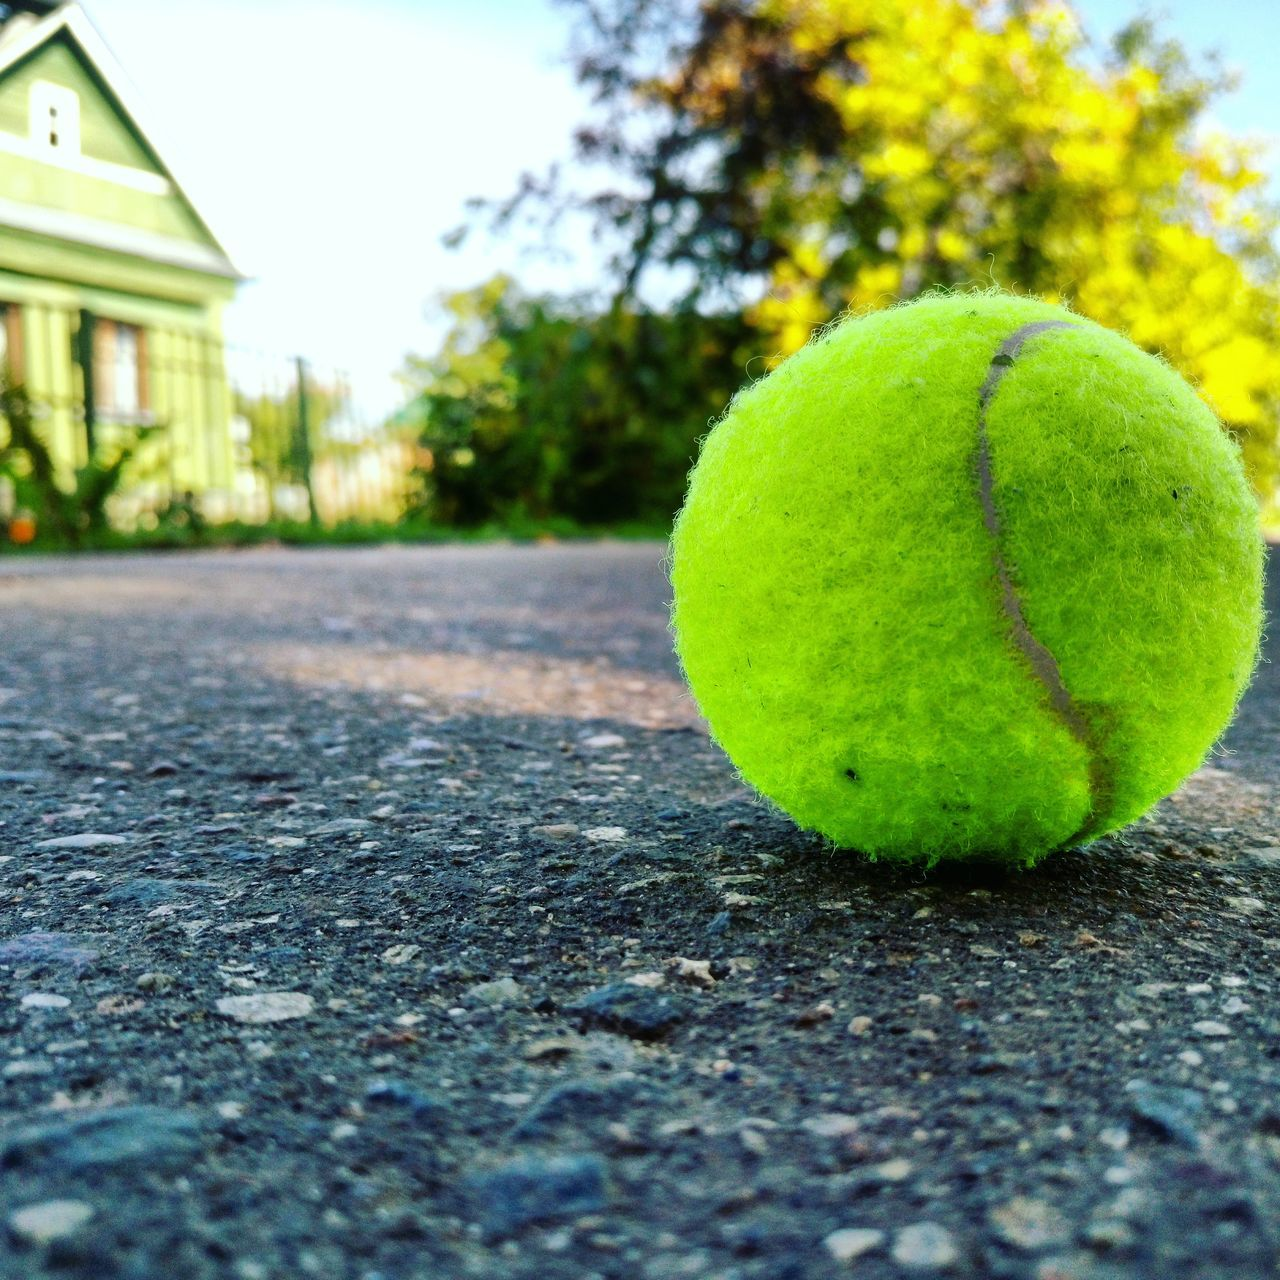 tennis ball, day, focus on foreground, close-up, outdoors, no people, tennis, ball, sport, court, sky